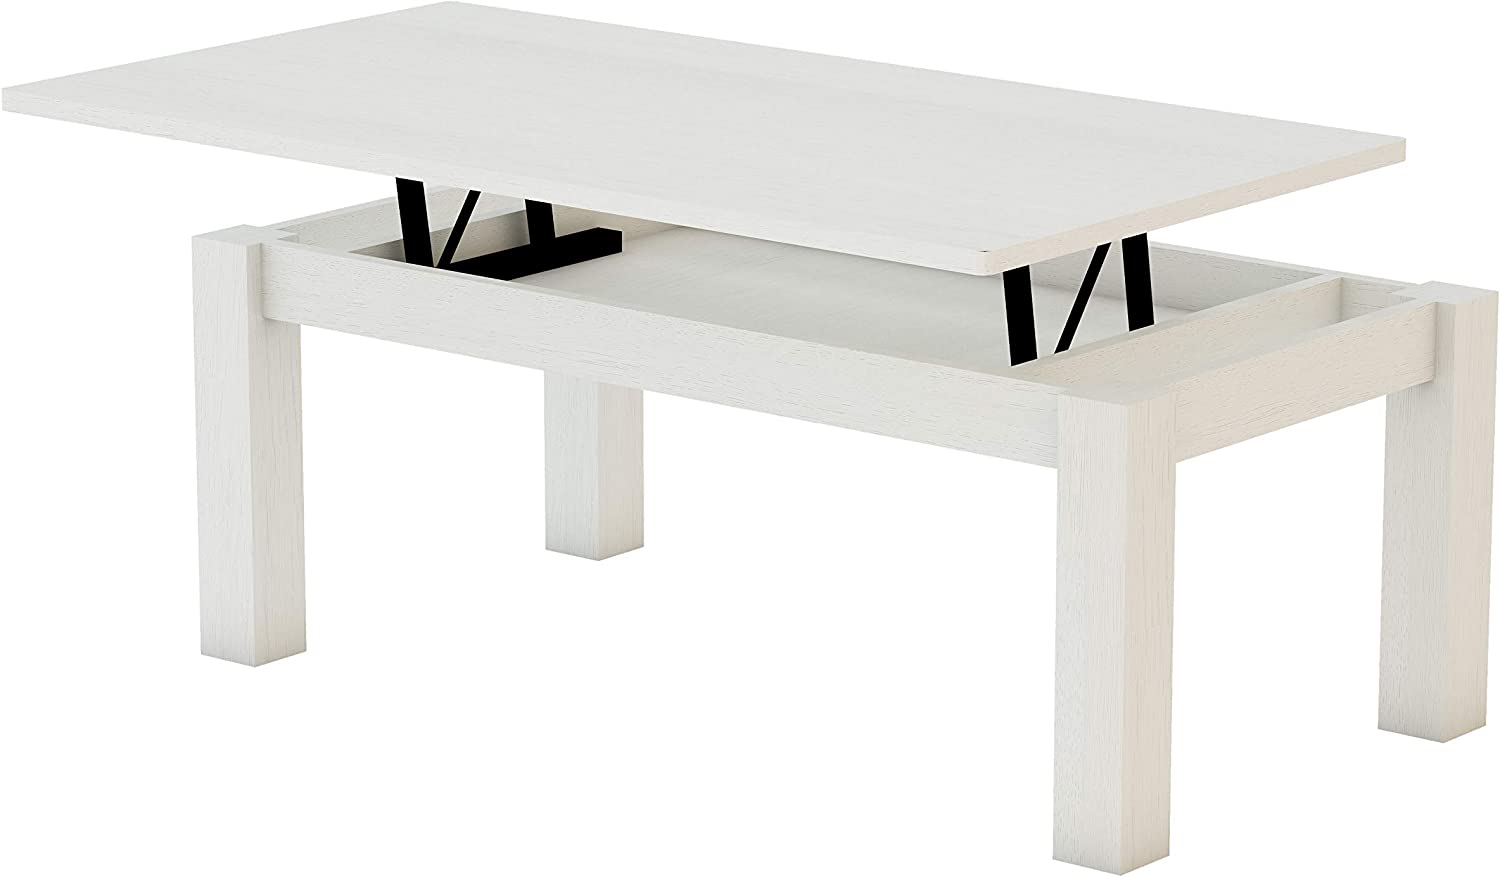 KR Decor MZ444 Mesa de Centro elevable Rectangular, Roble, Blanco ...